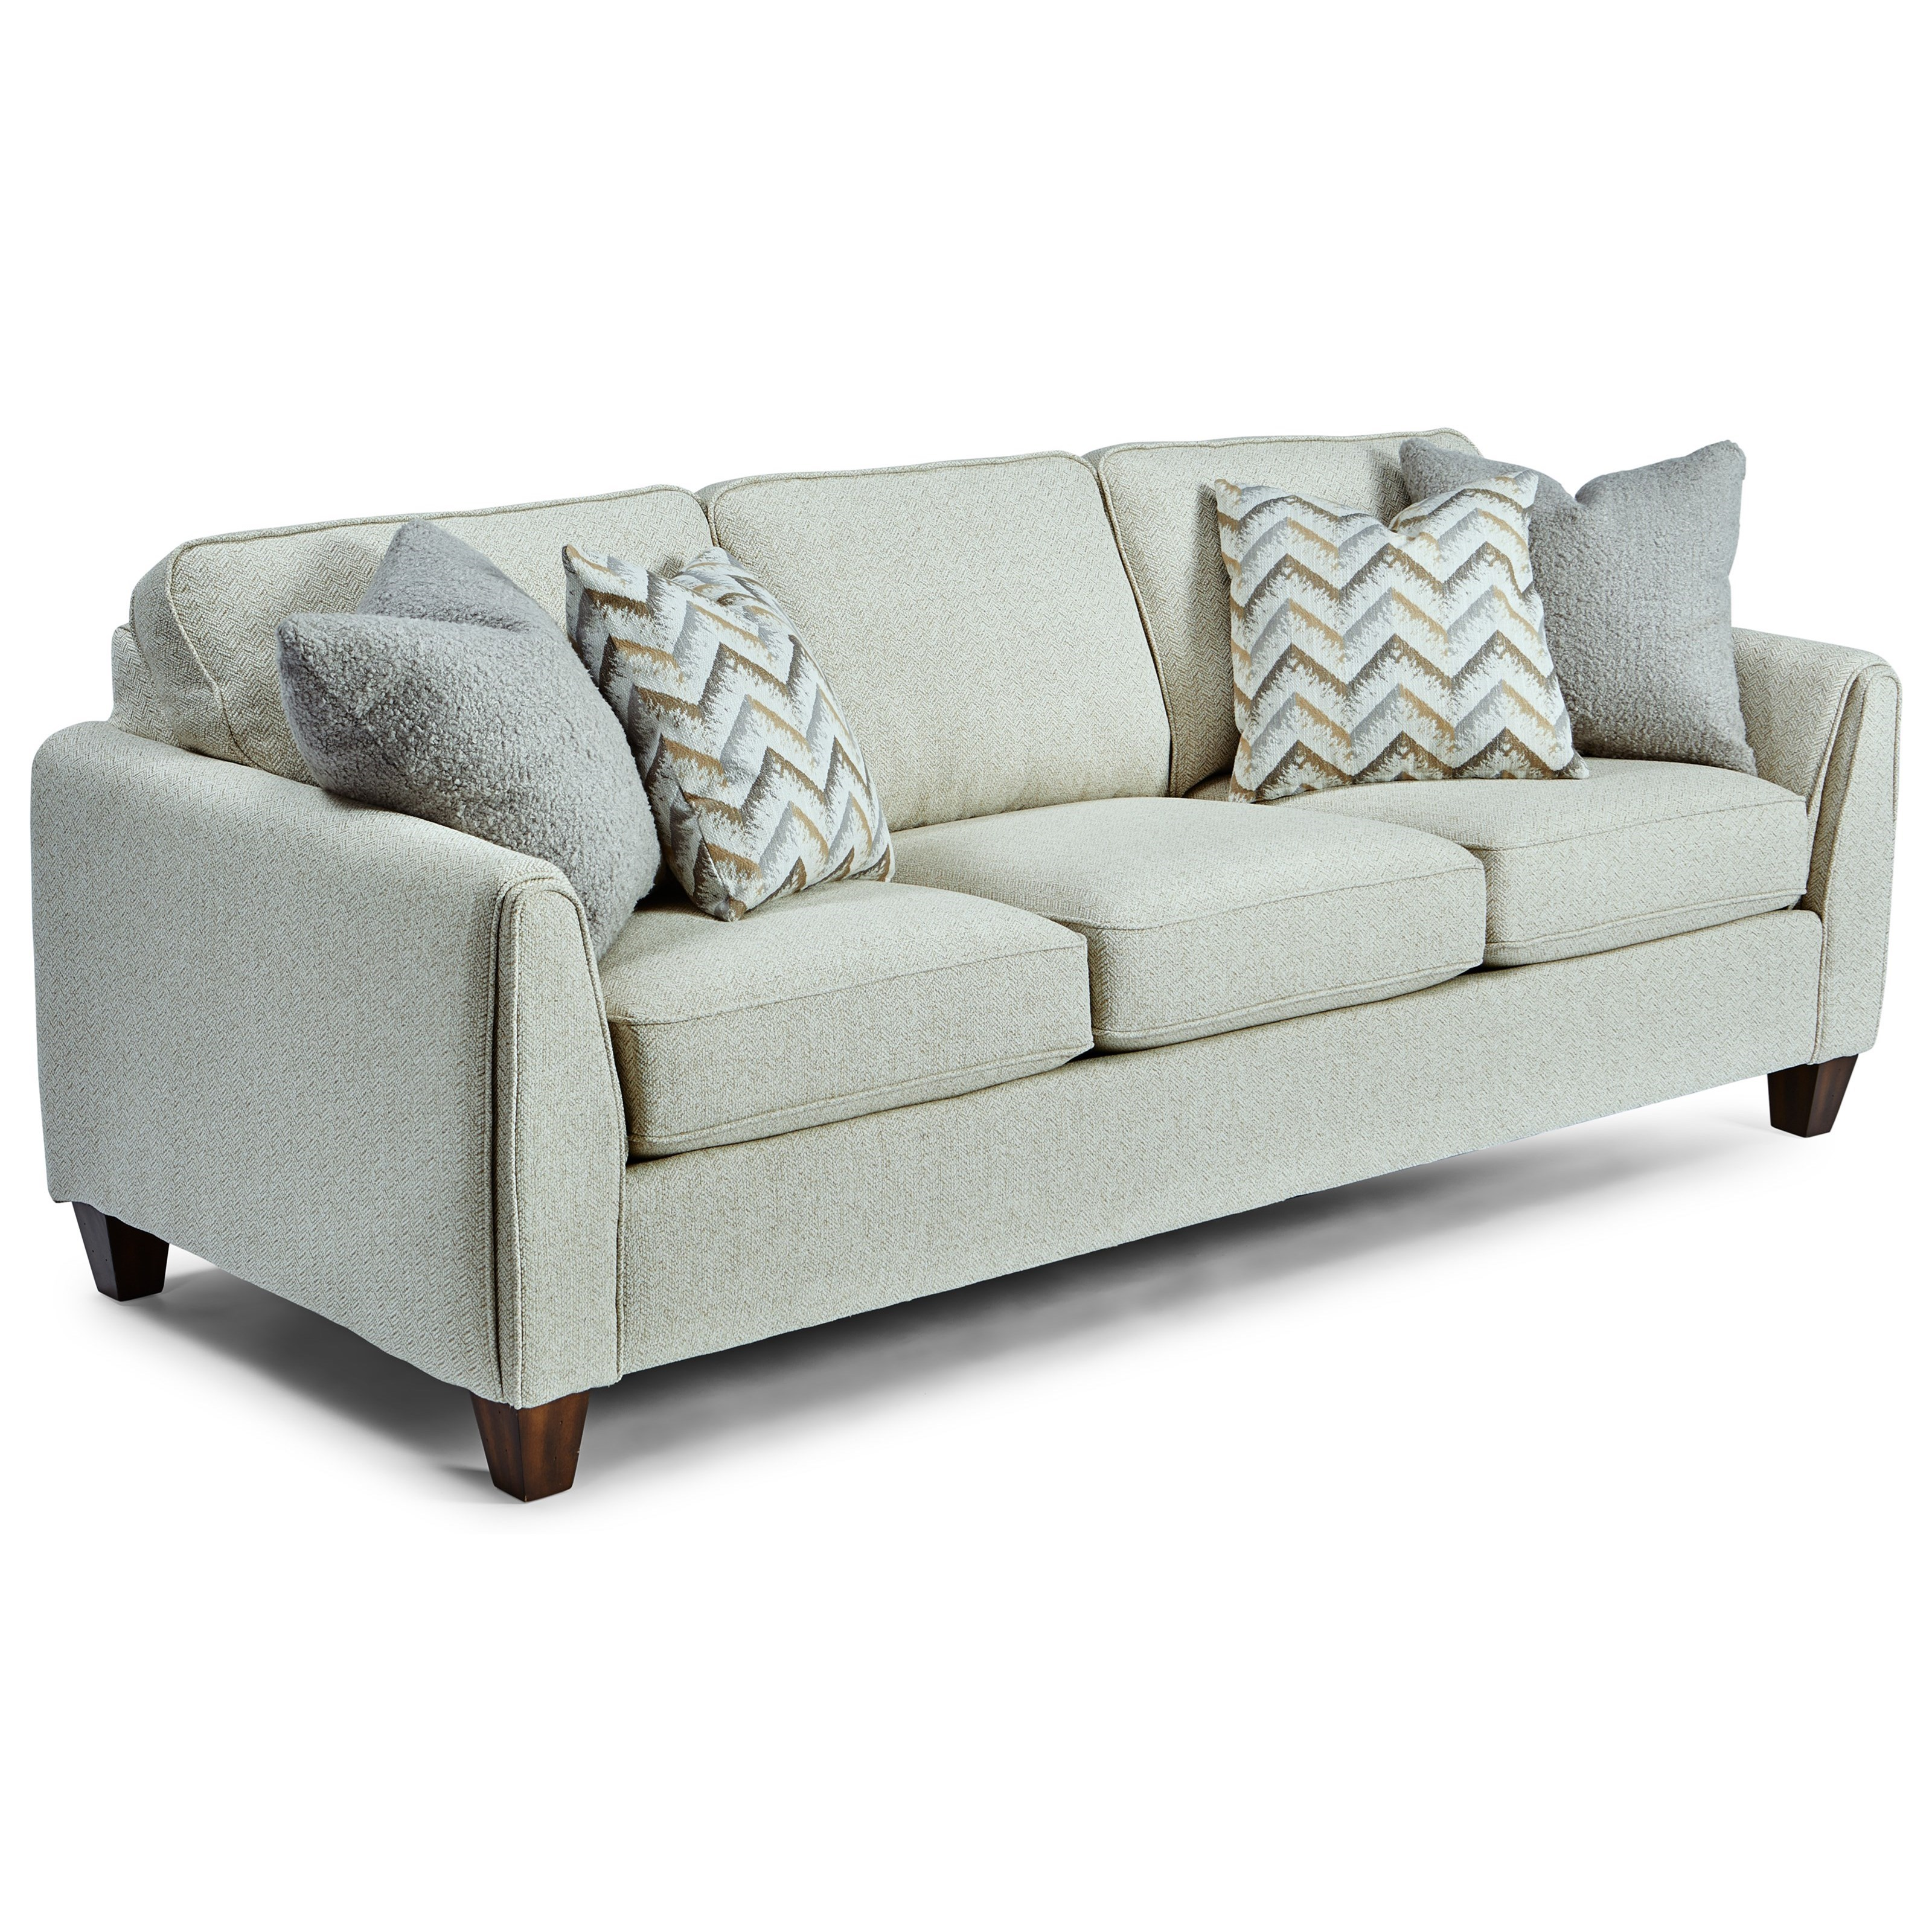 Bryce Sofa by Flexsteel at Pilgrim Furniture City